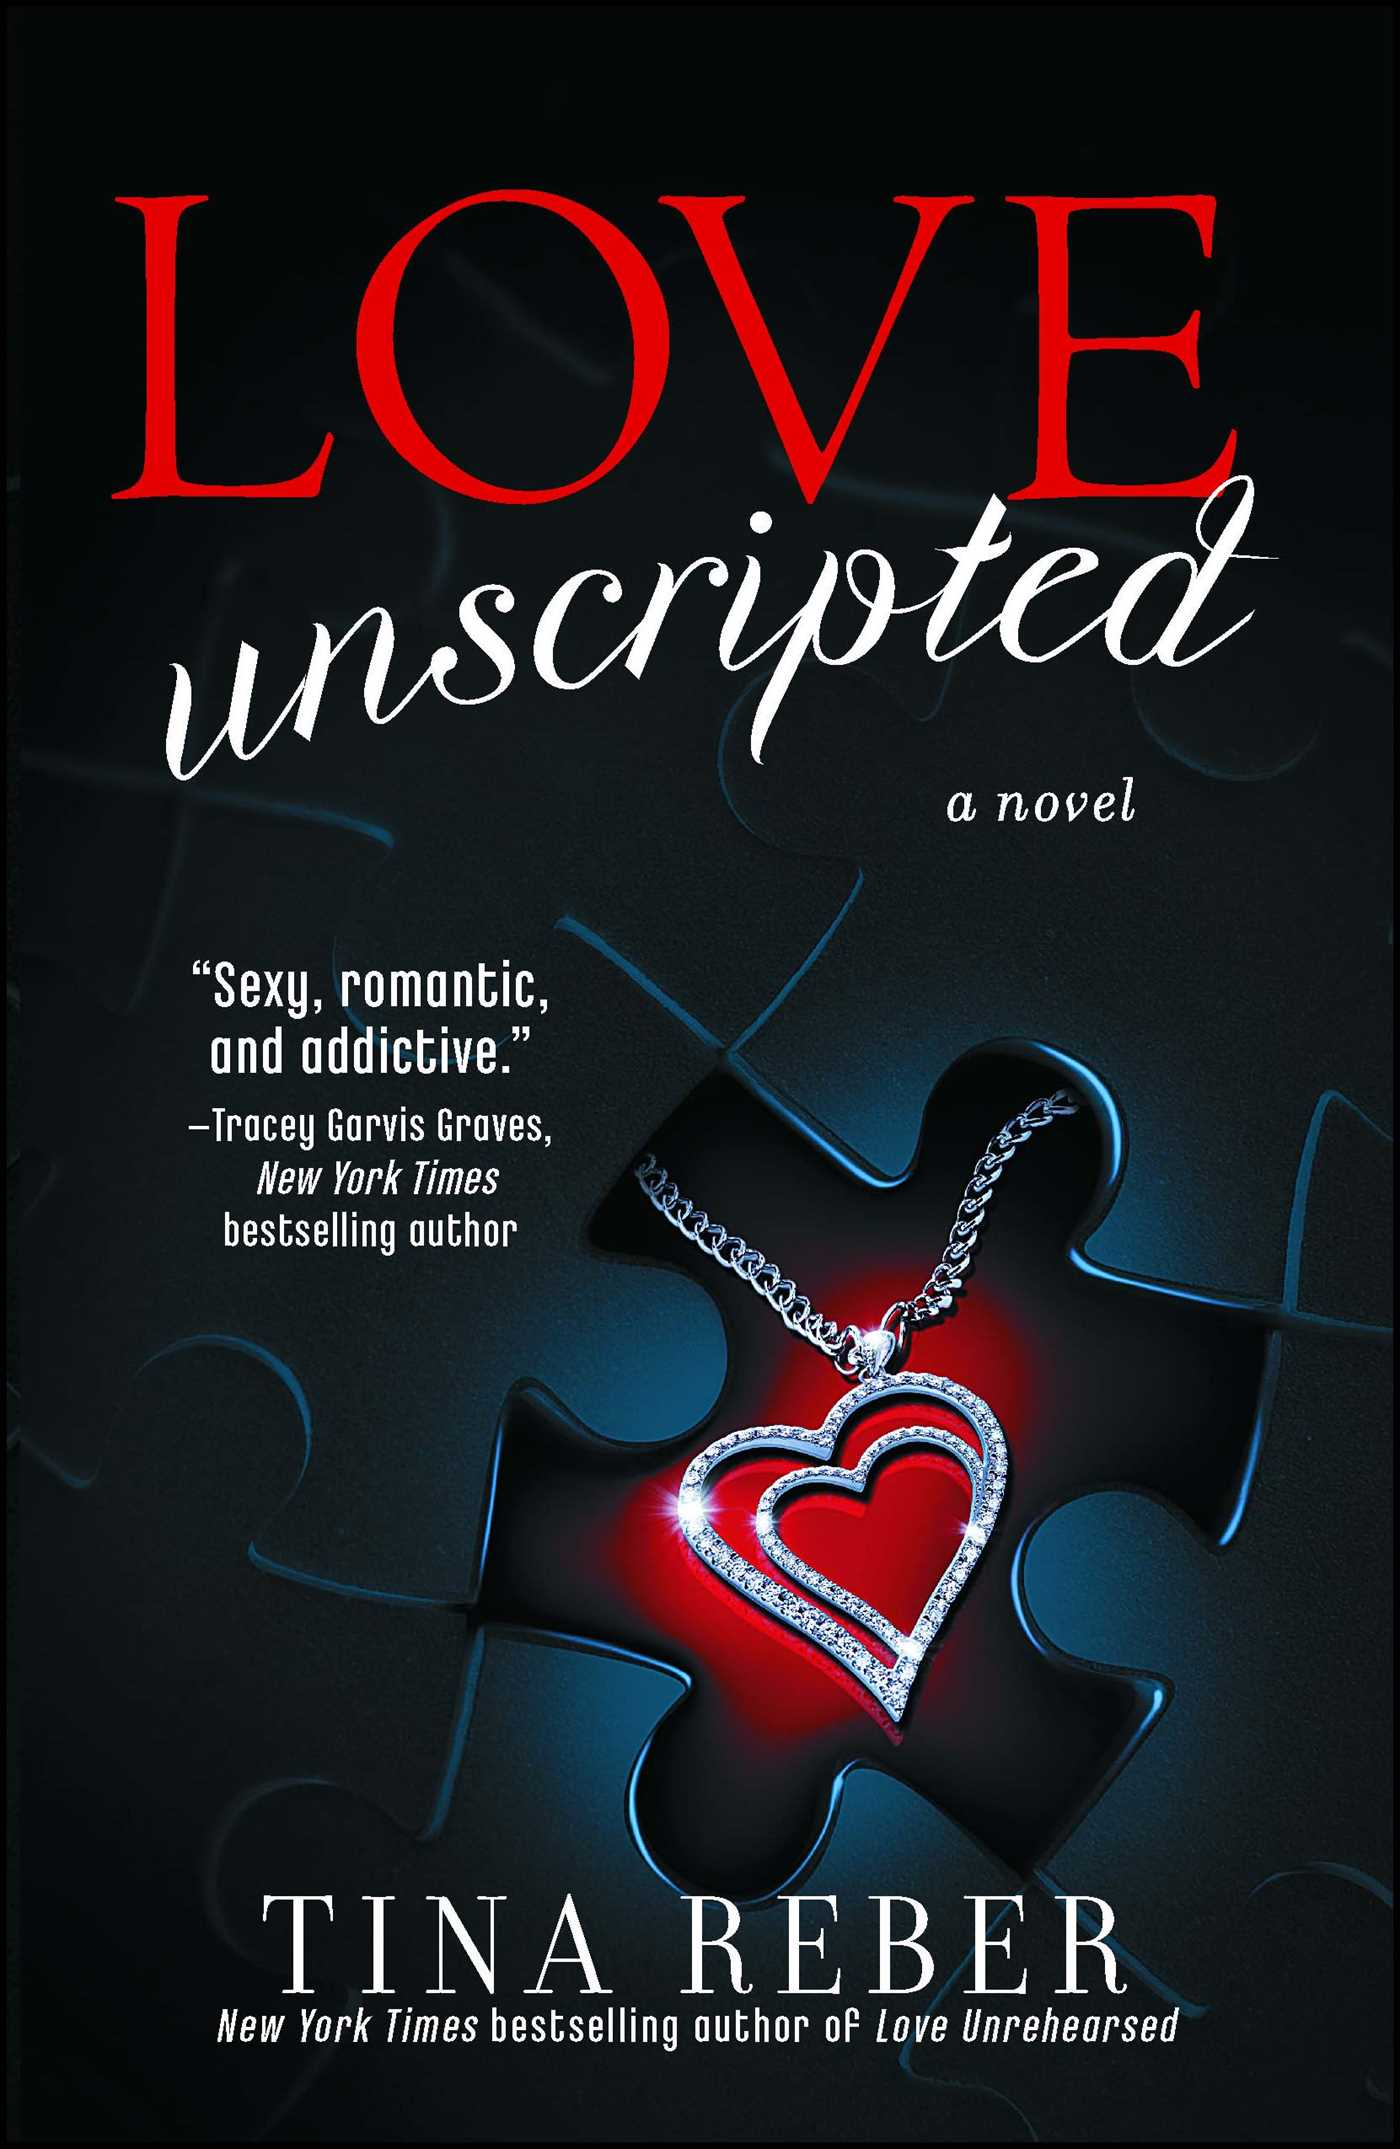 Love unscripted 9781476718682 hr